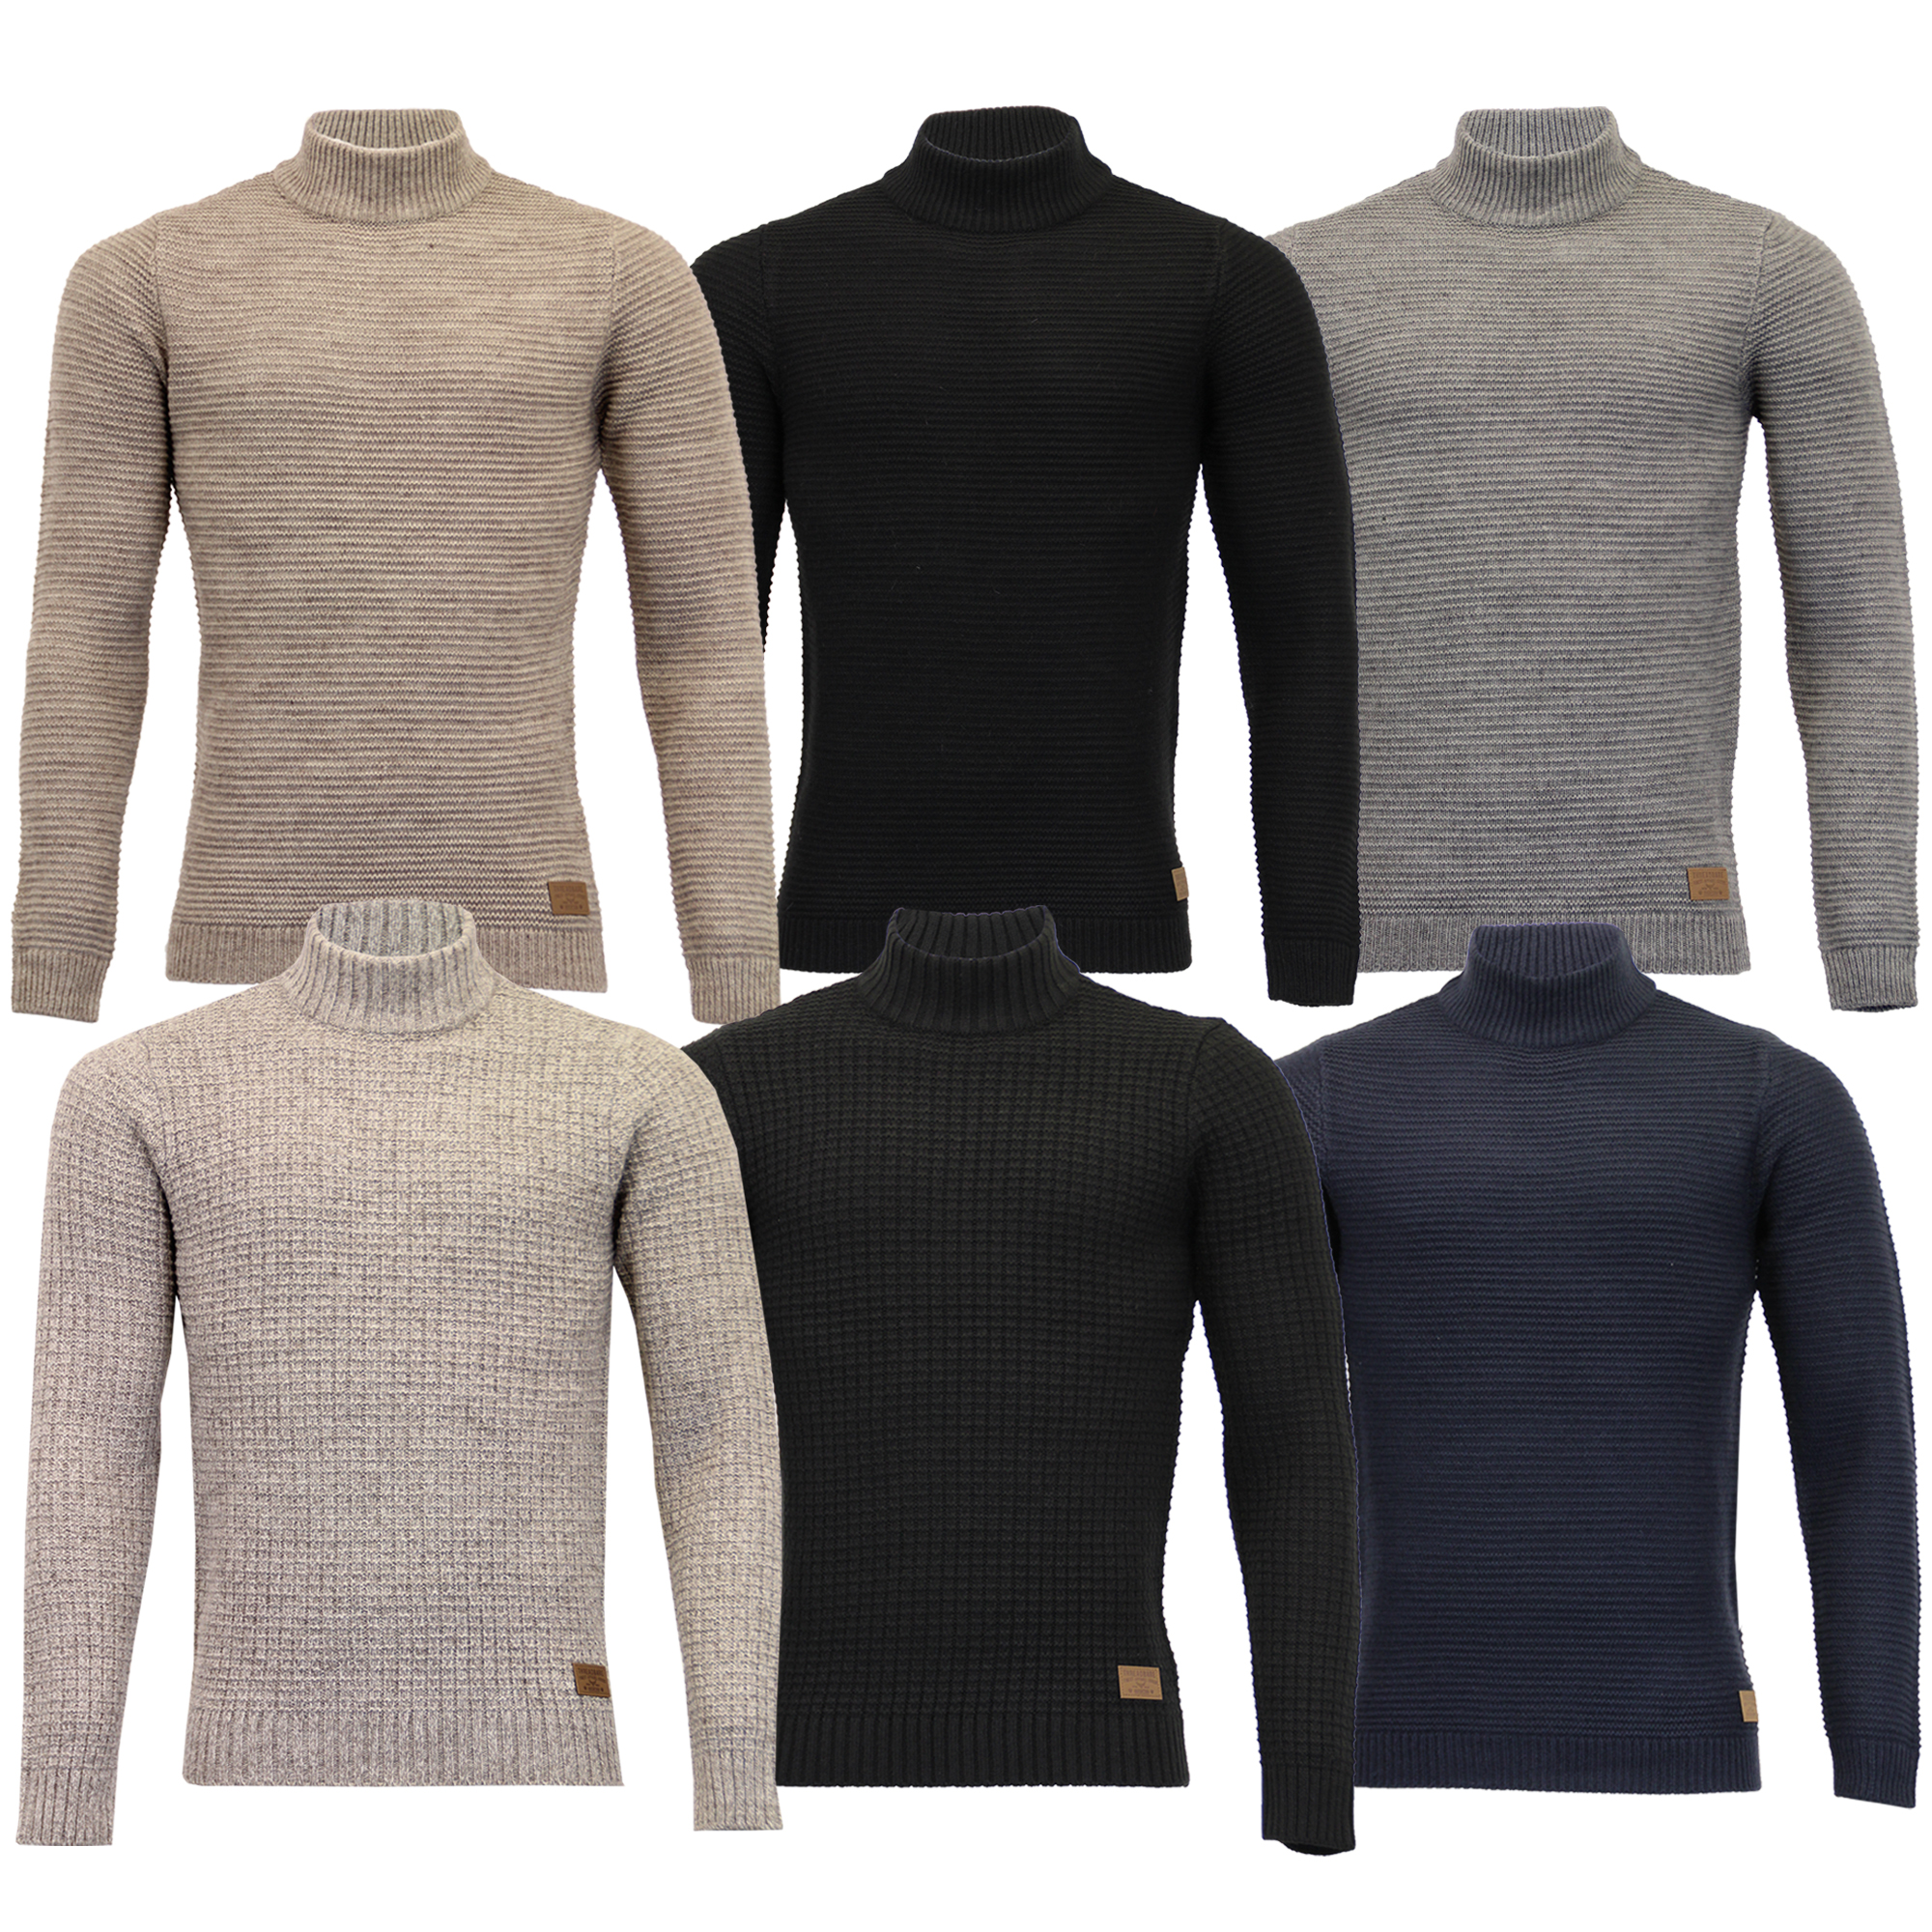 43821d0e65 Details about Mens Polo Neck Wool Mix Jumper Threadbare Knitted Sweater Top  Waffle Winter New